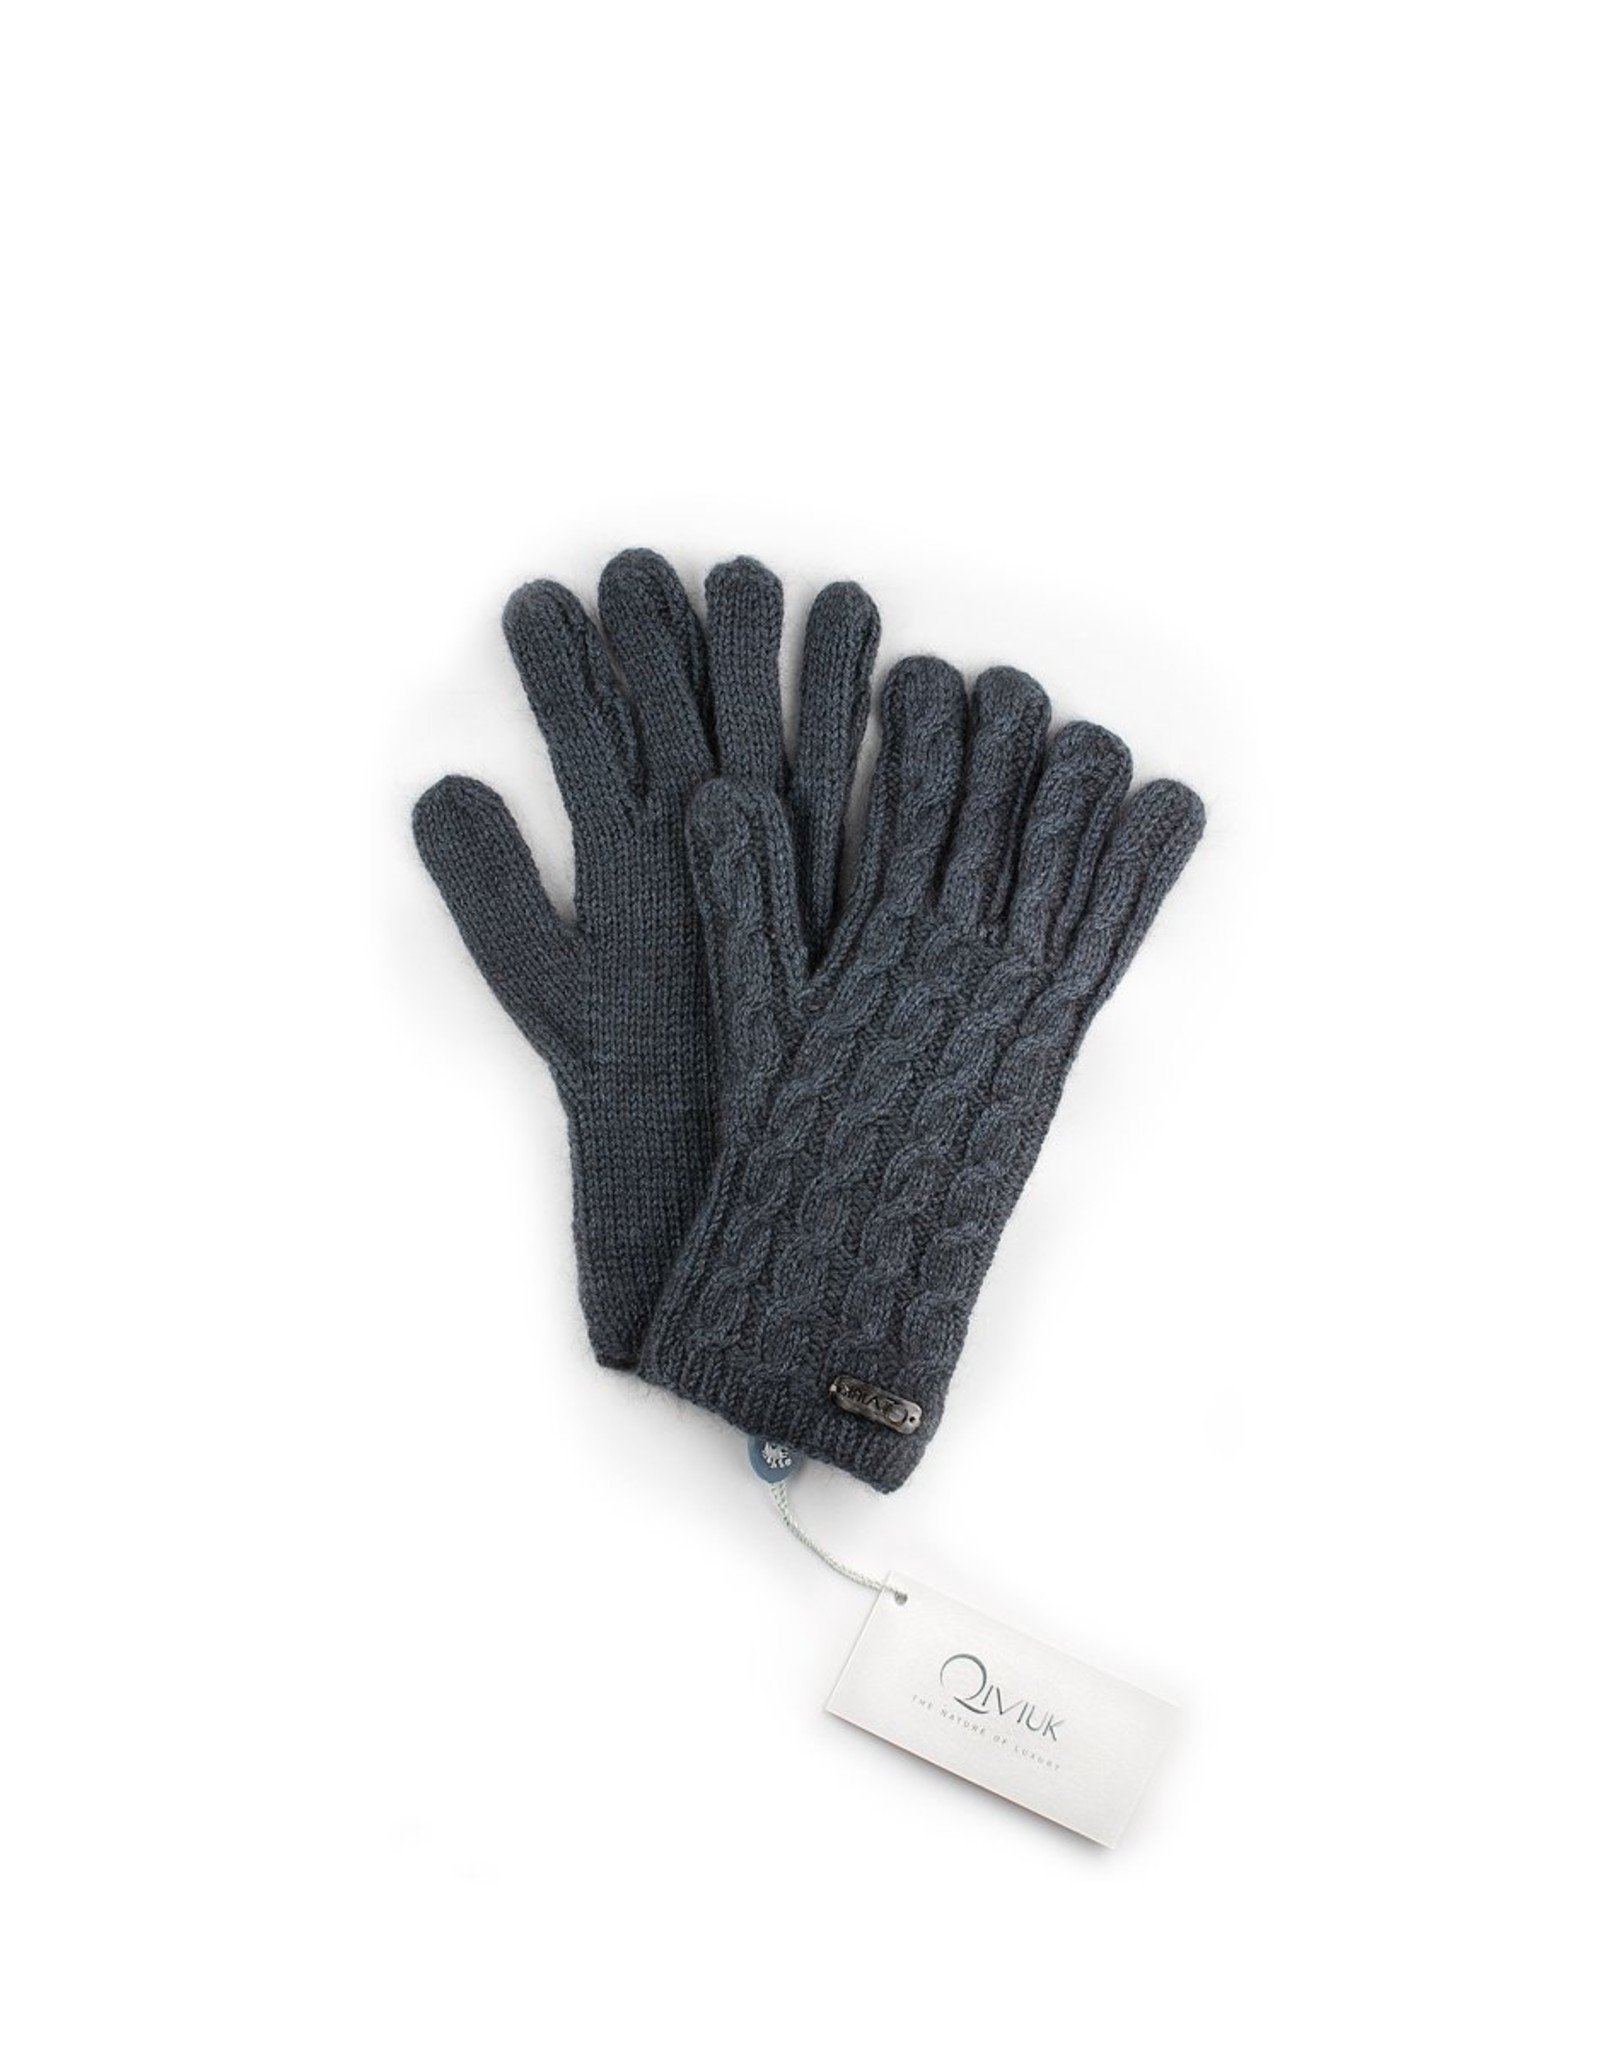 Cable Gloves - 45% Qiviuk 45% Merino 10% Silk